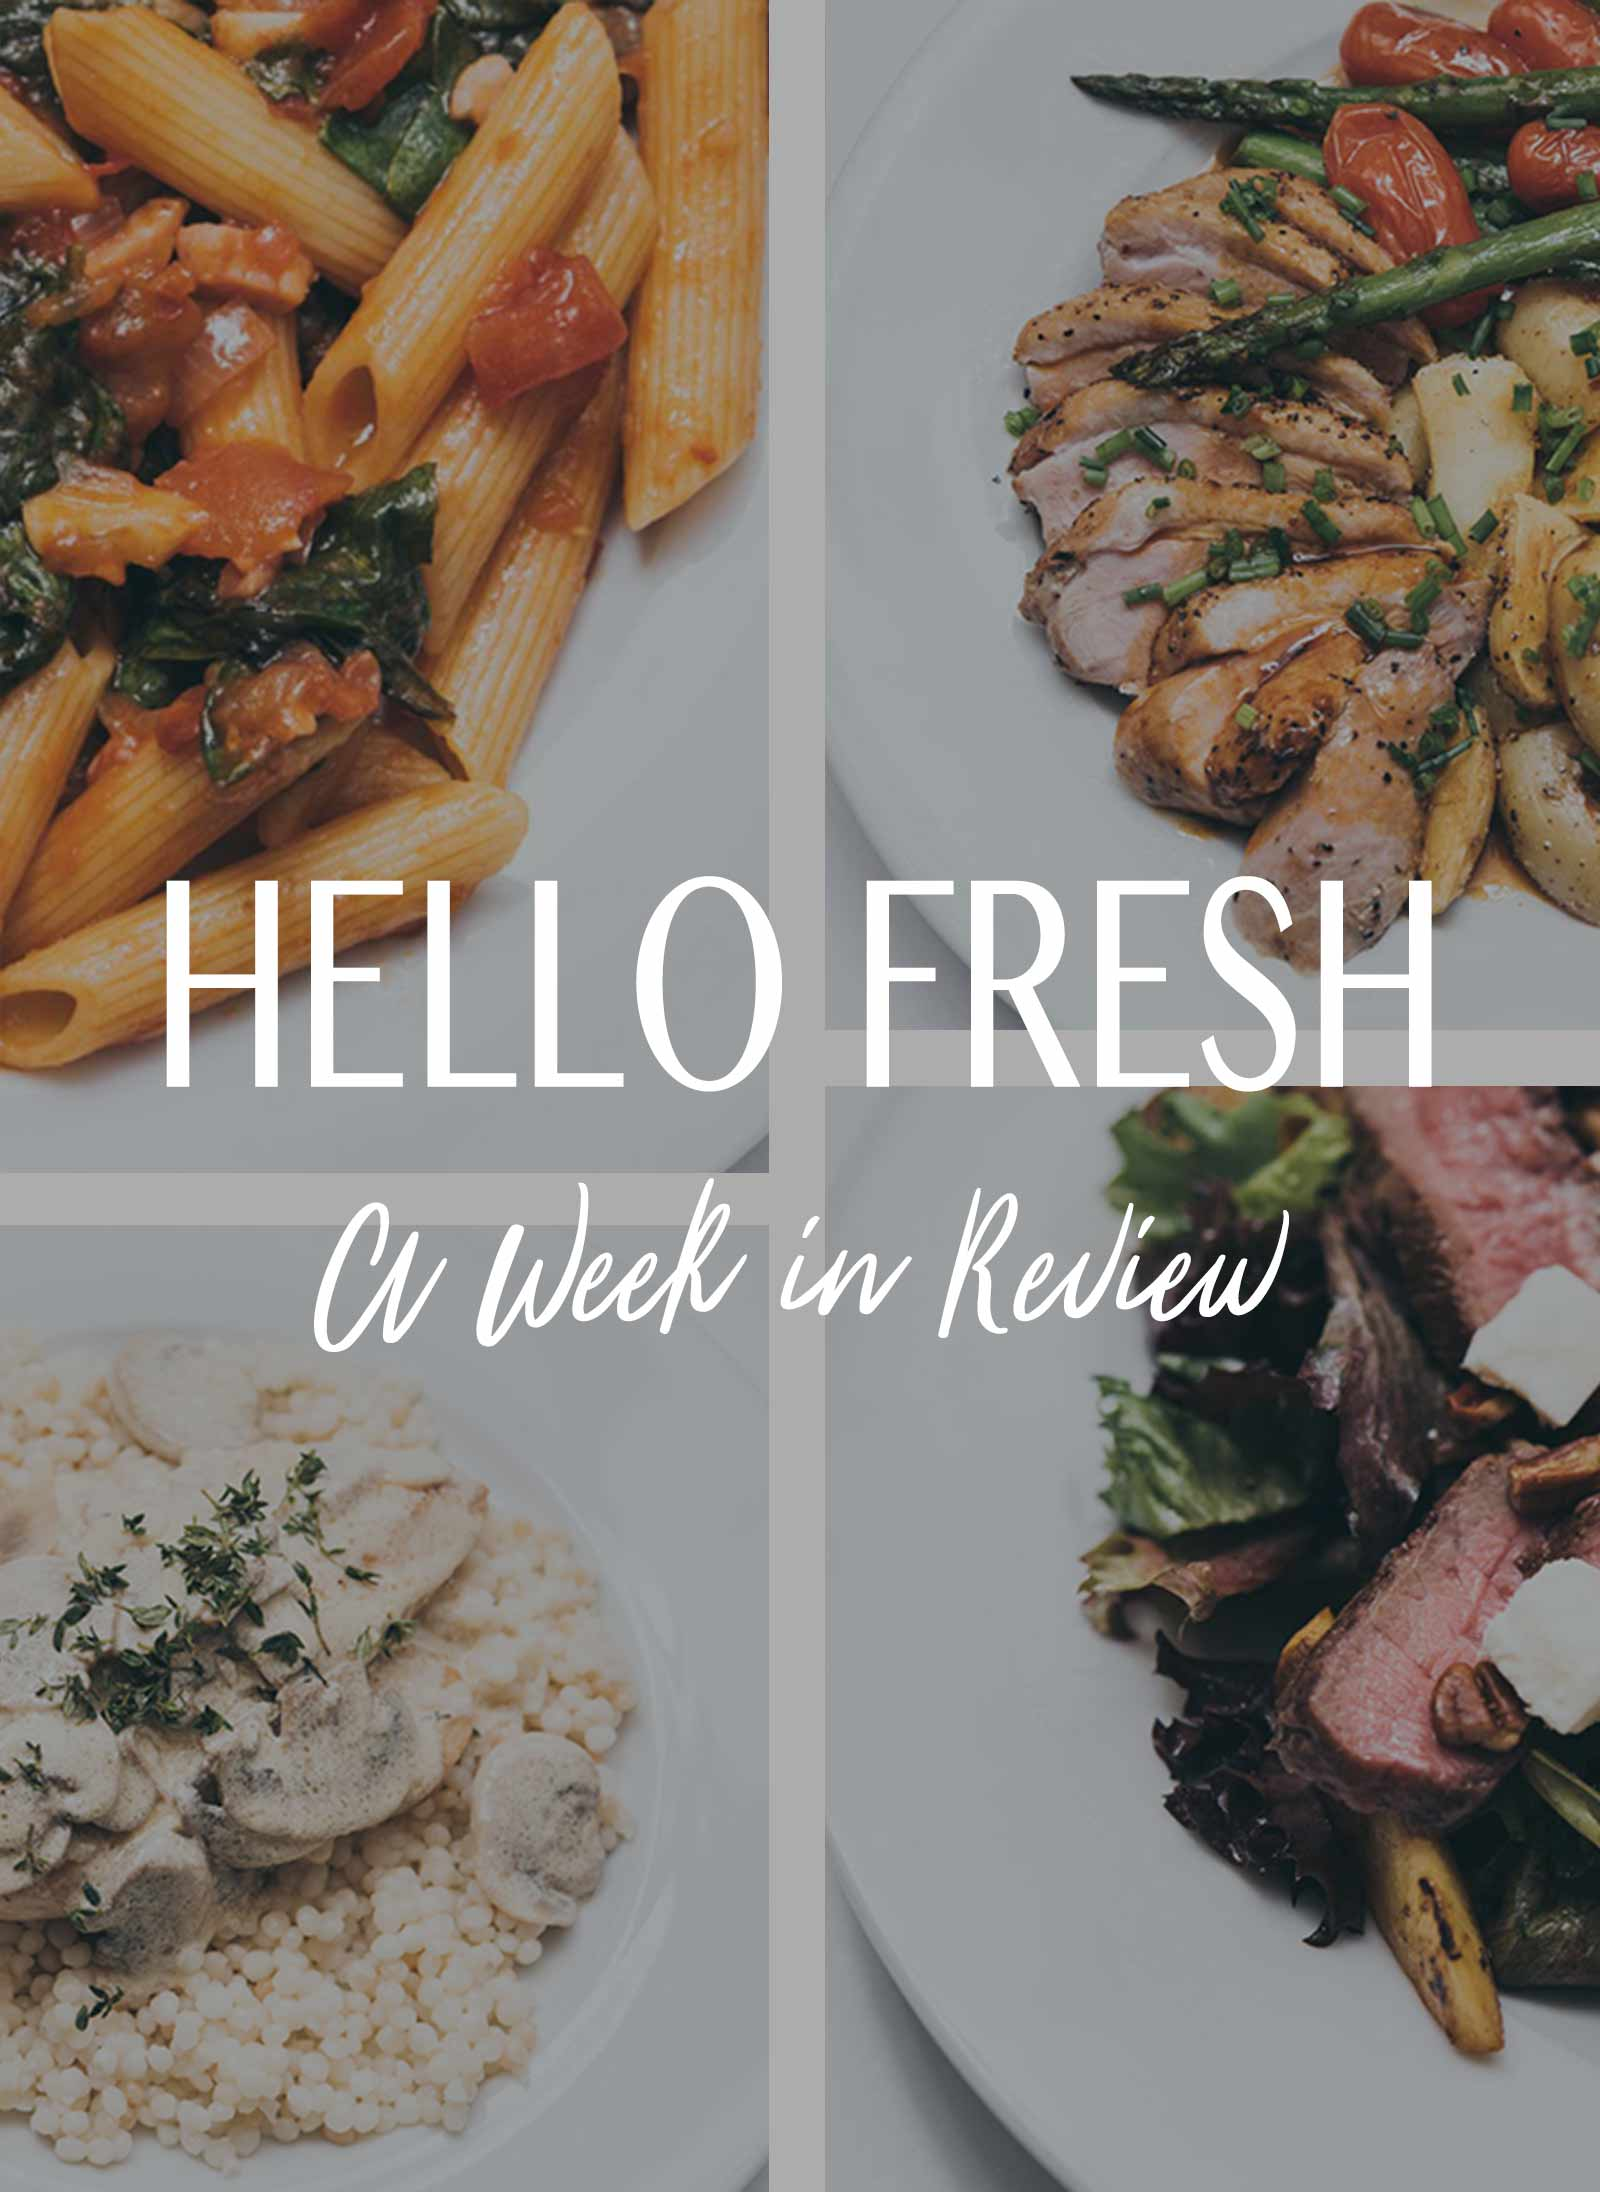 20 Percent Off Online Coupon Hellofresh April 2020